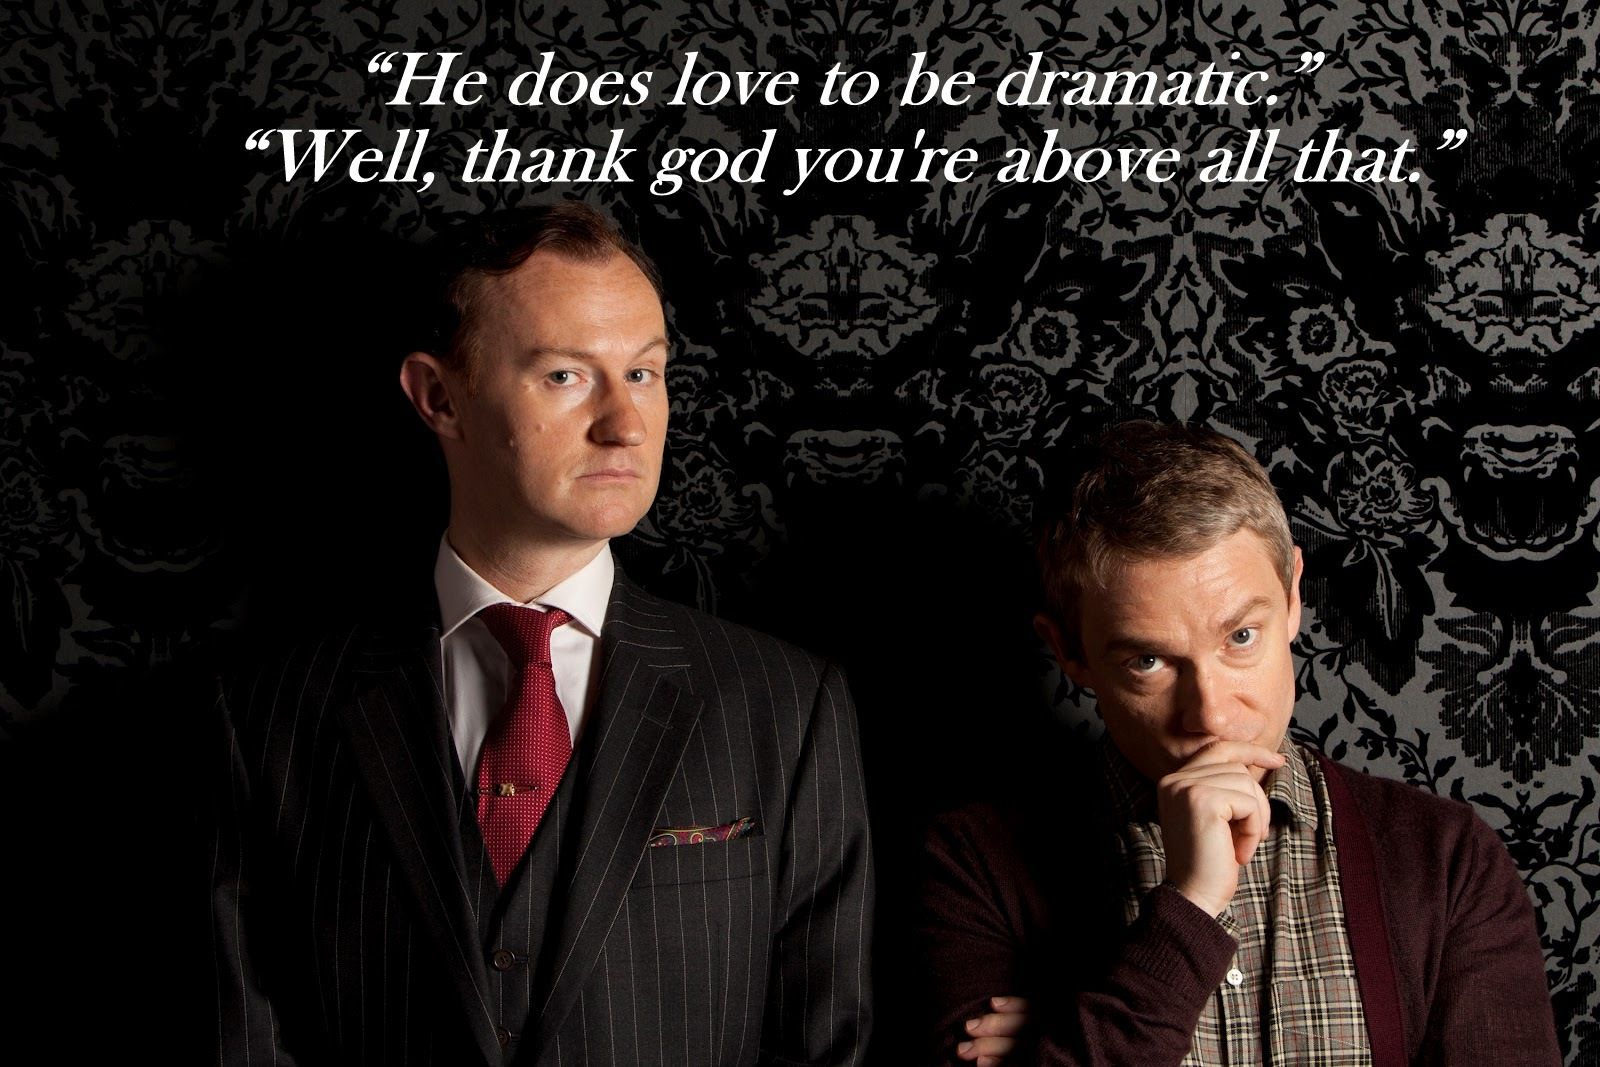 By far one of my favorite John Watson quotes. YES!